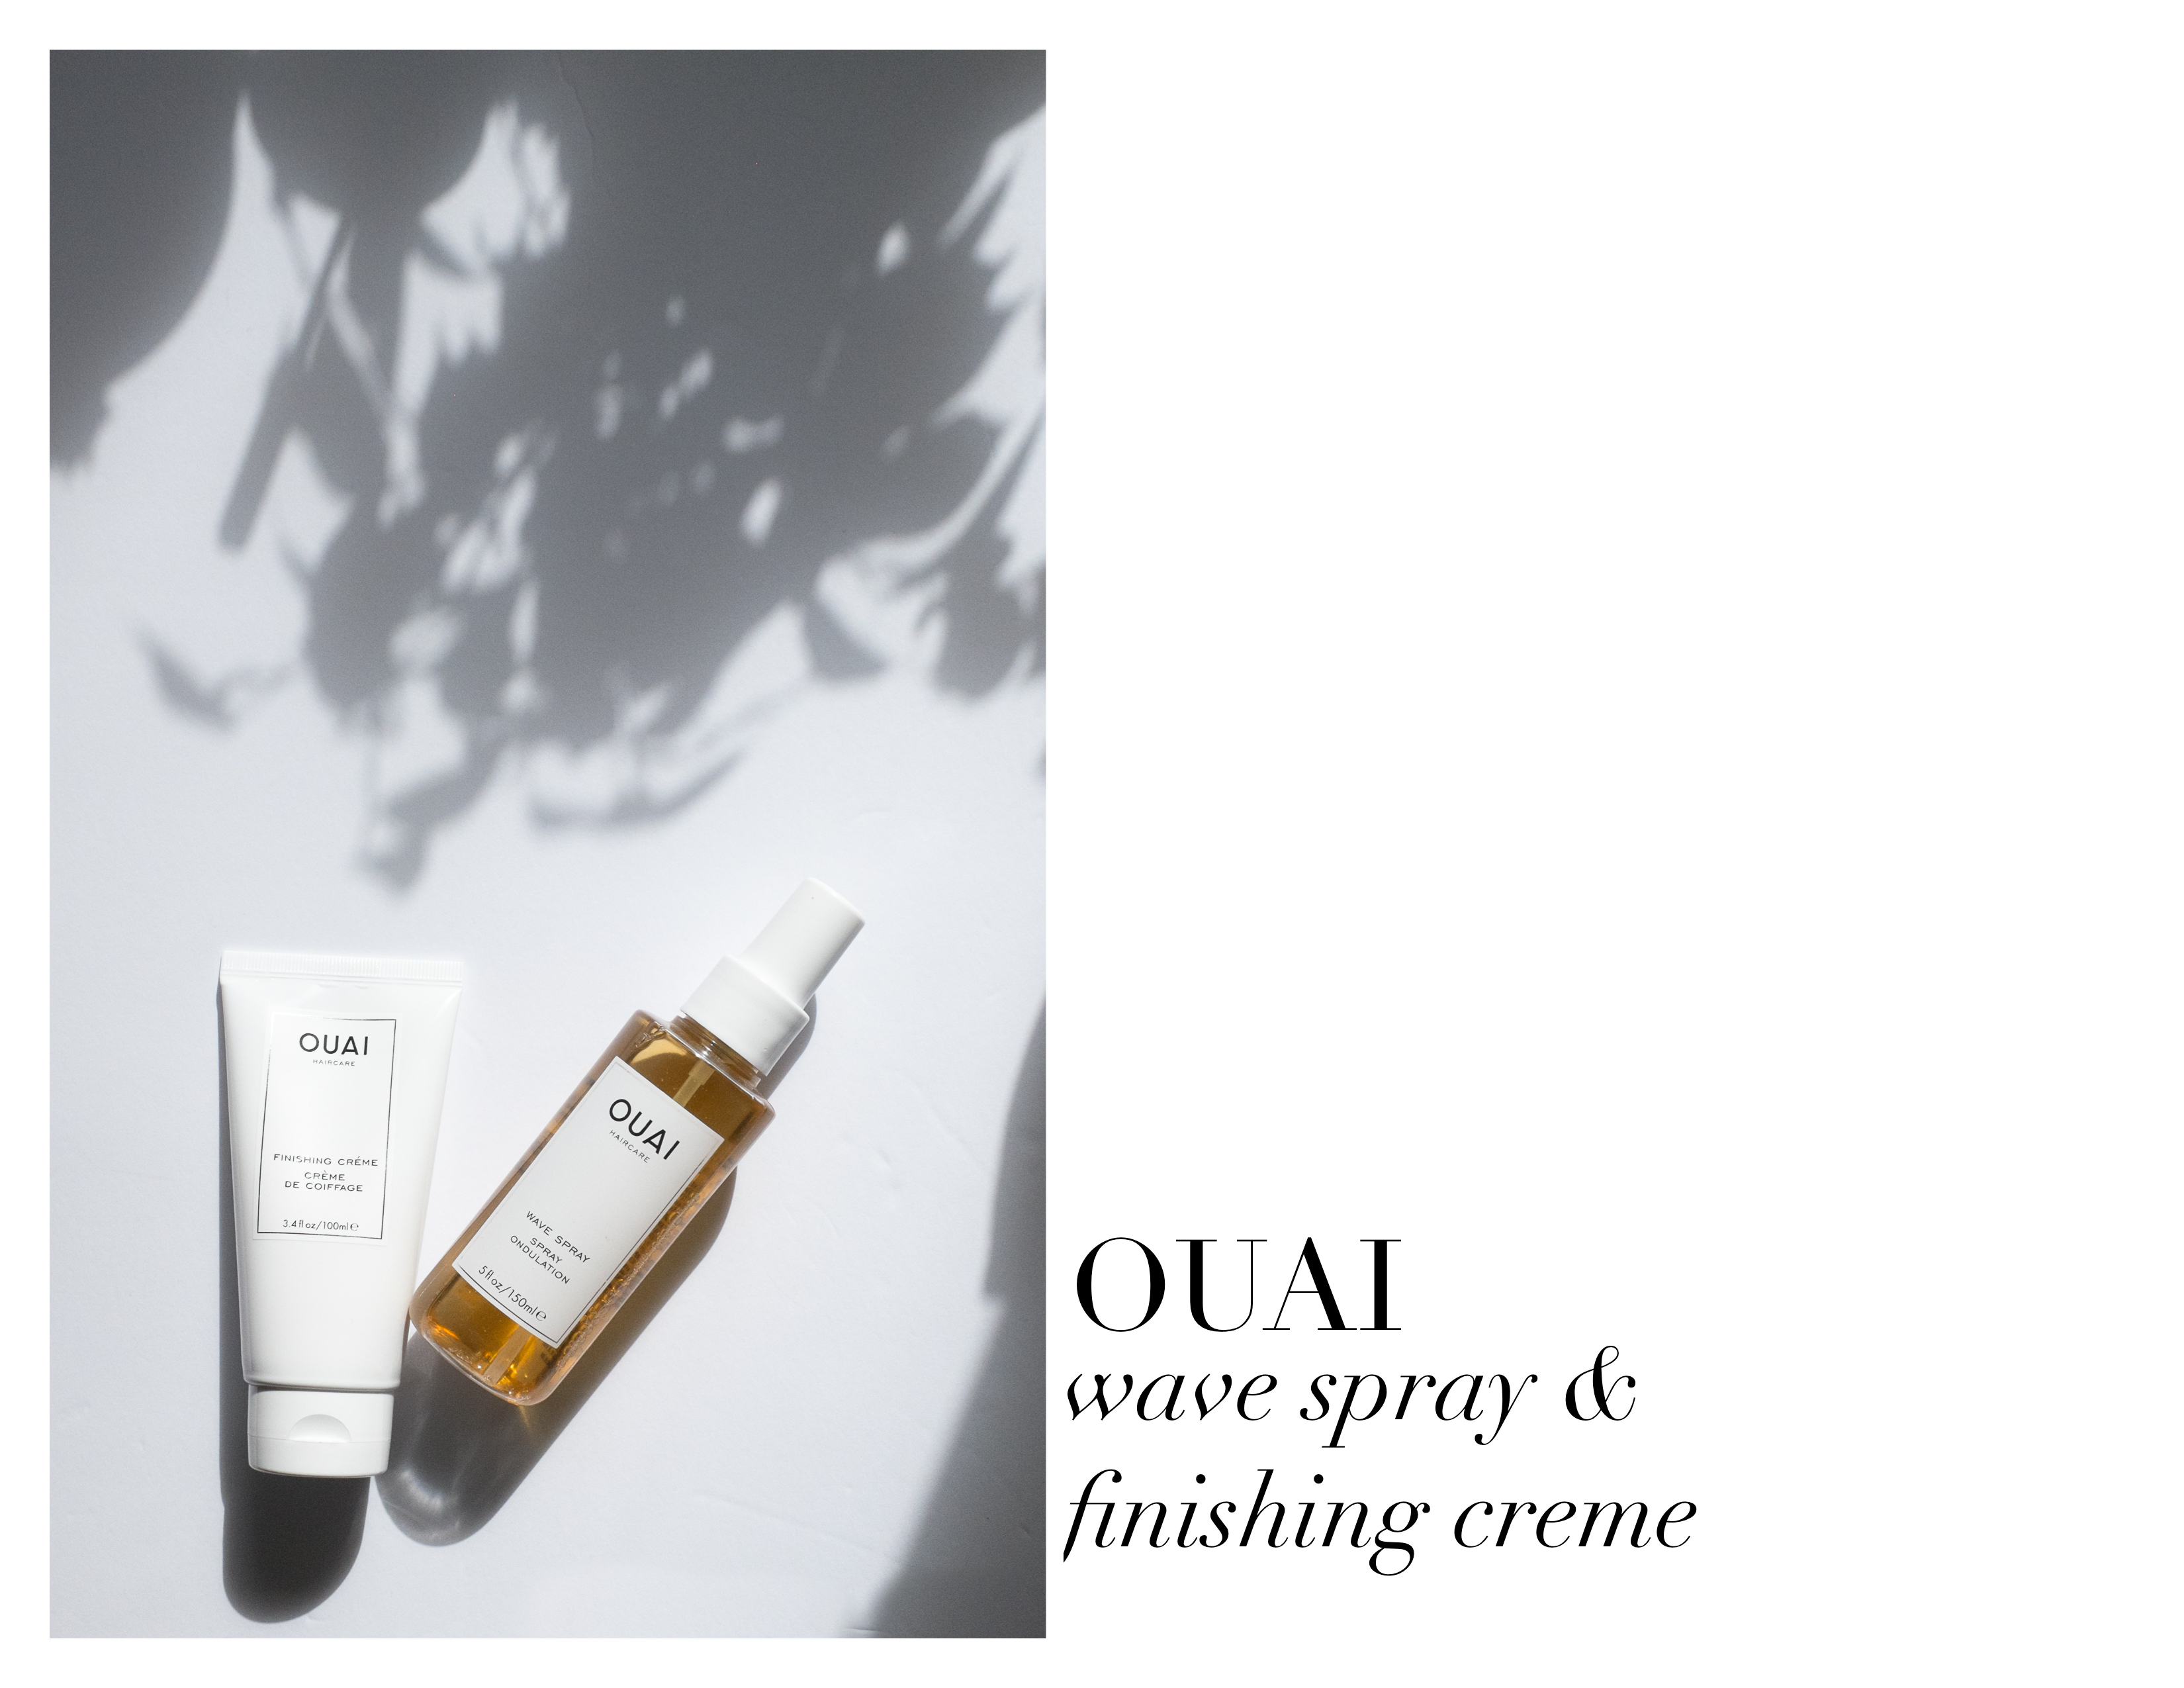 Where My Eyes Go | Lifestyle Photography | OUAI Wave Spray | OUAI Finishing Creme